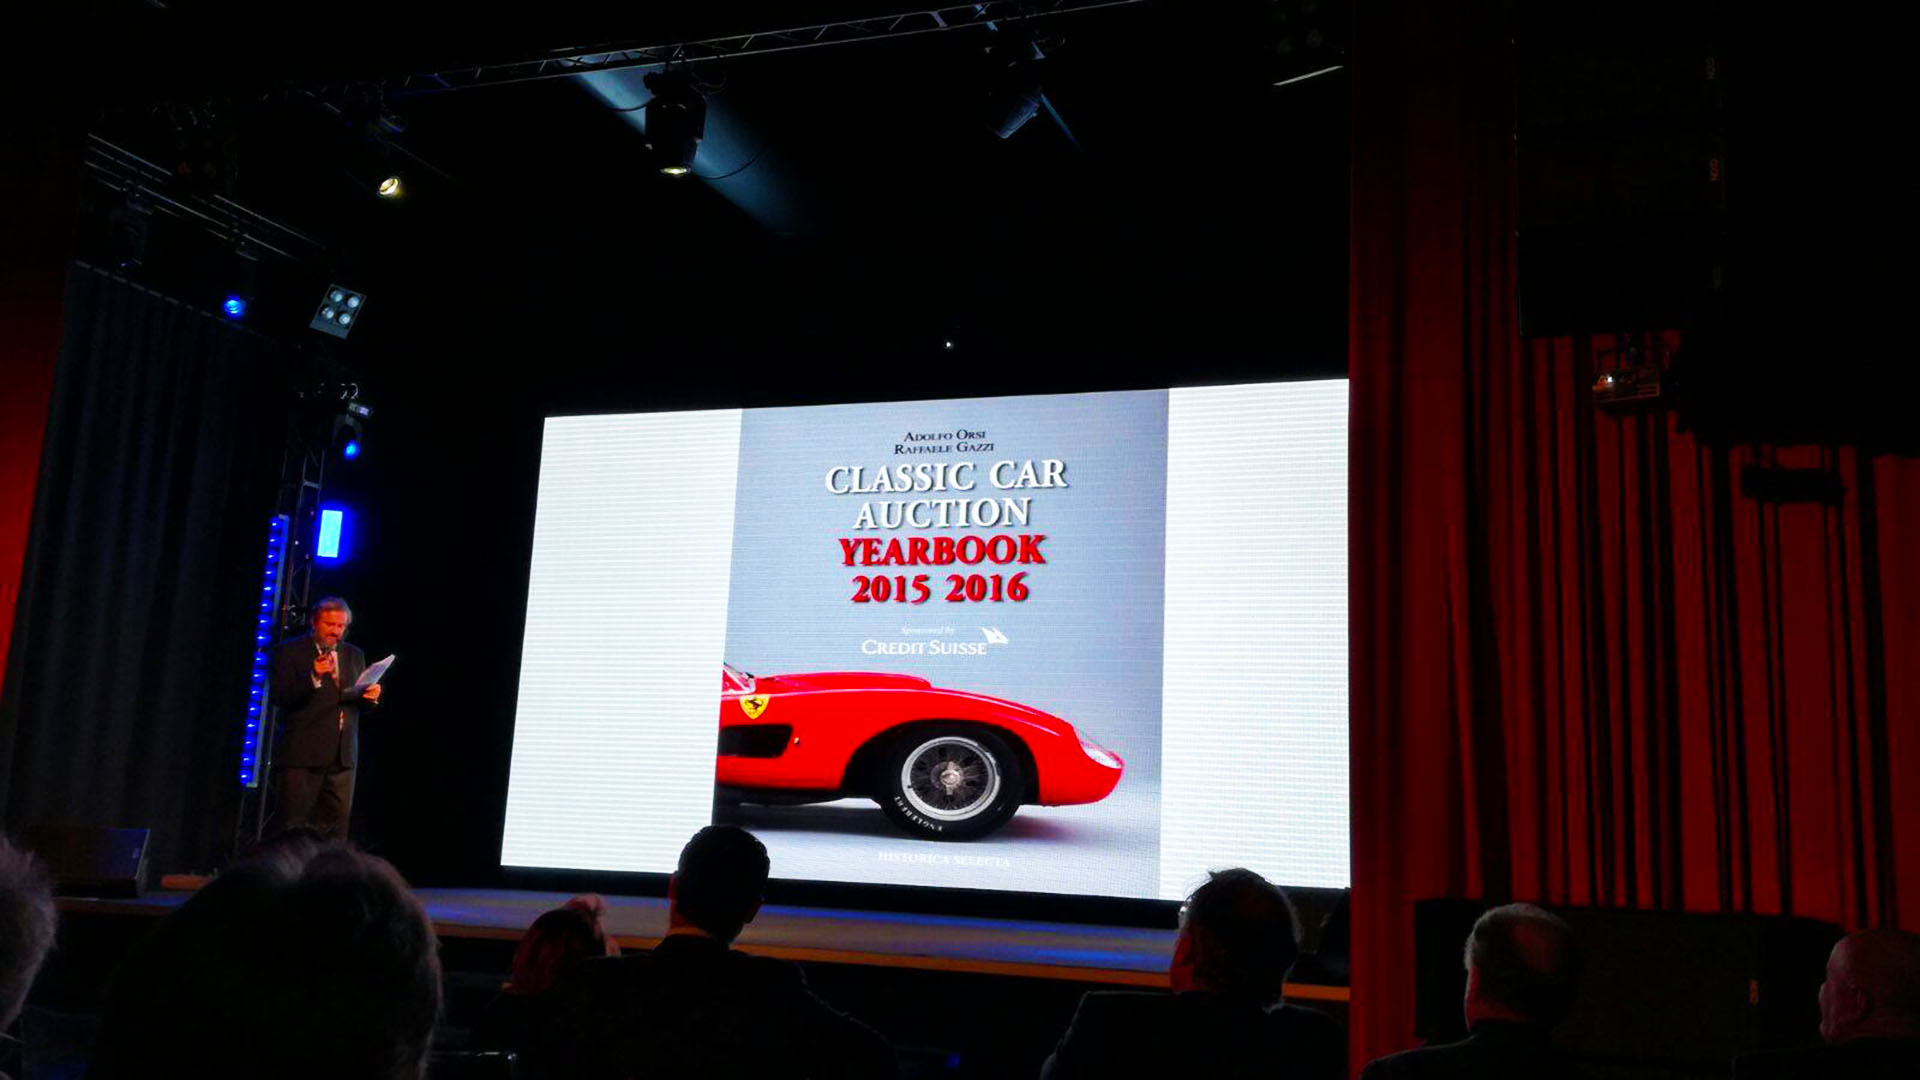 classic-car-auction-yearbook-2015-2016-credit-suisse